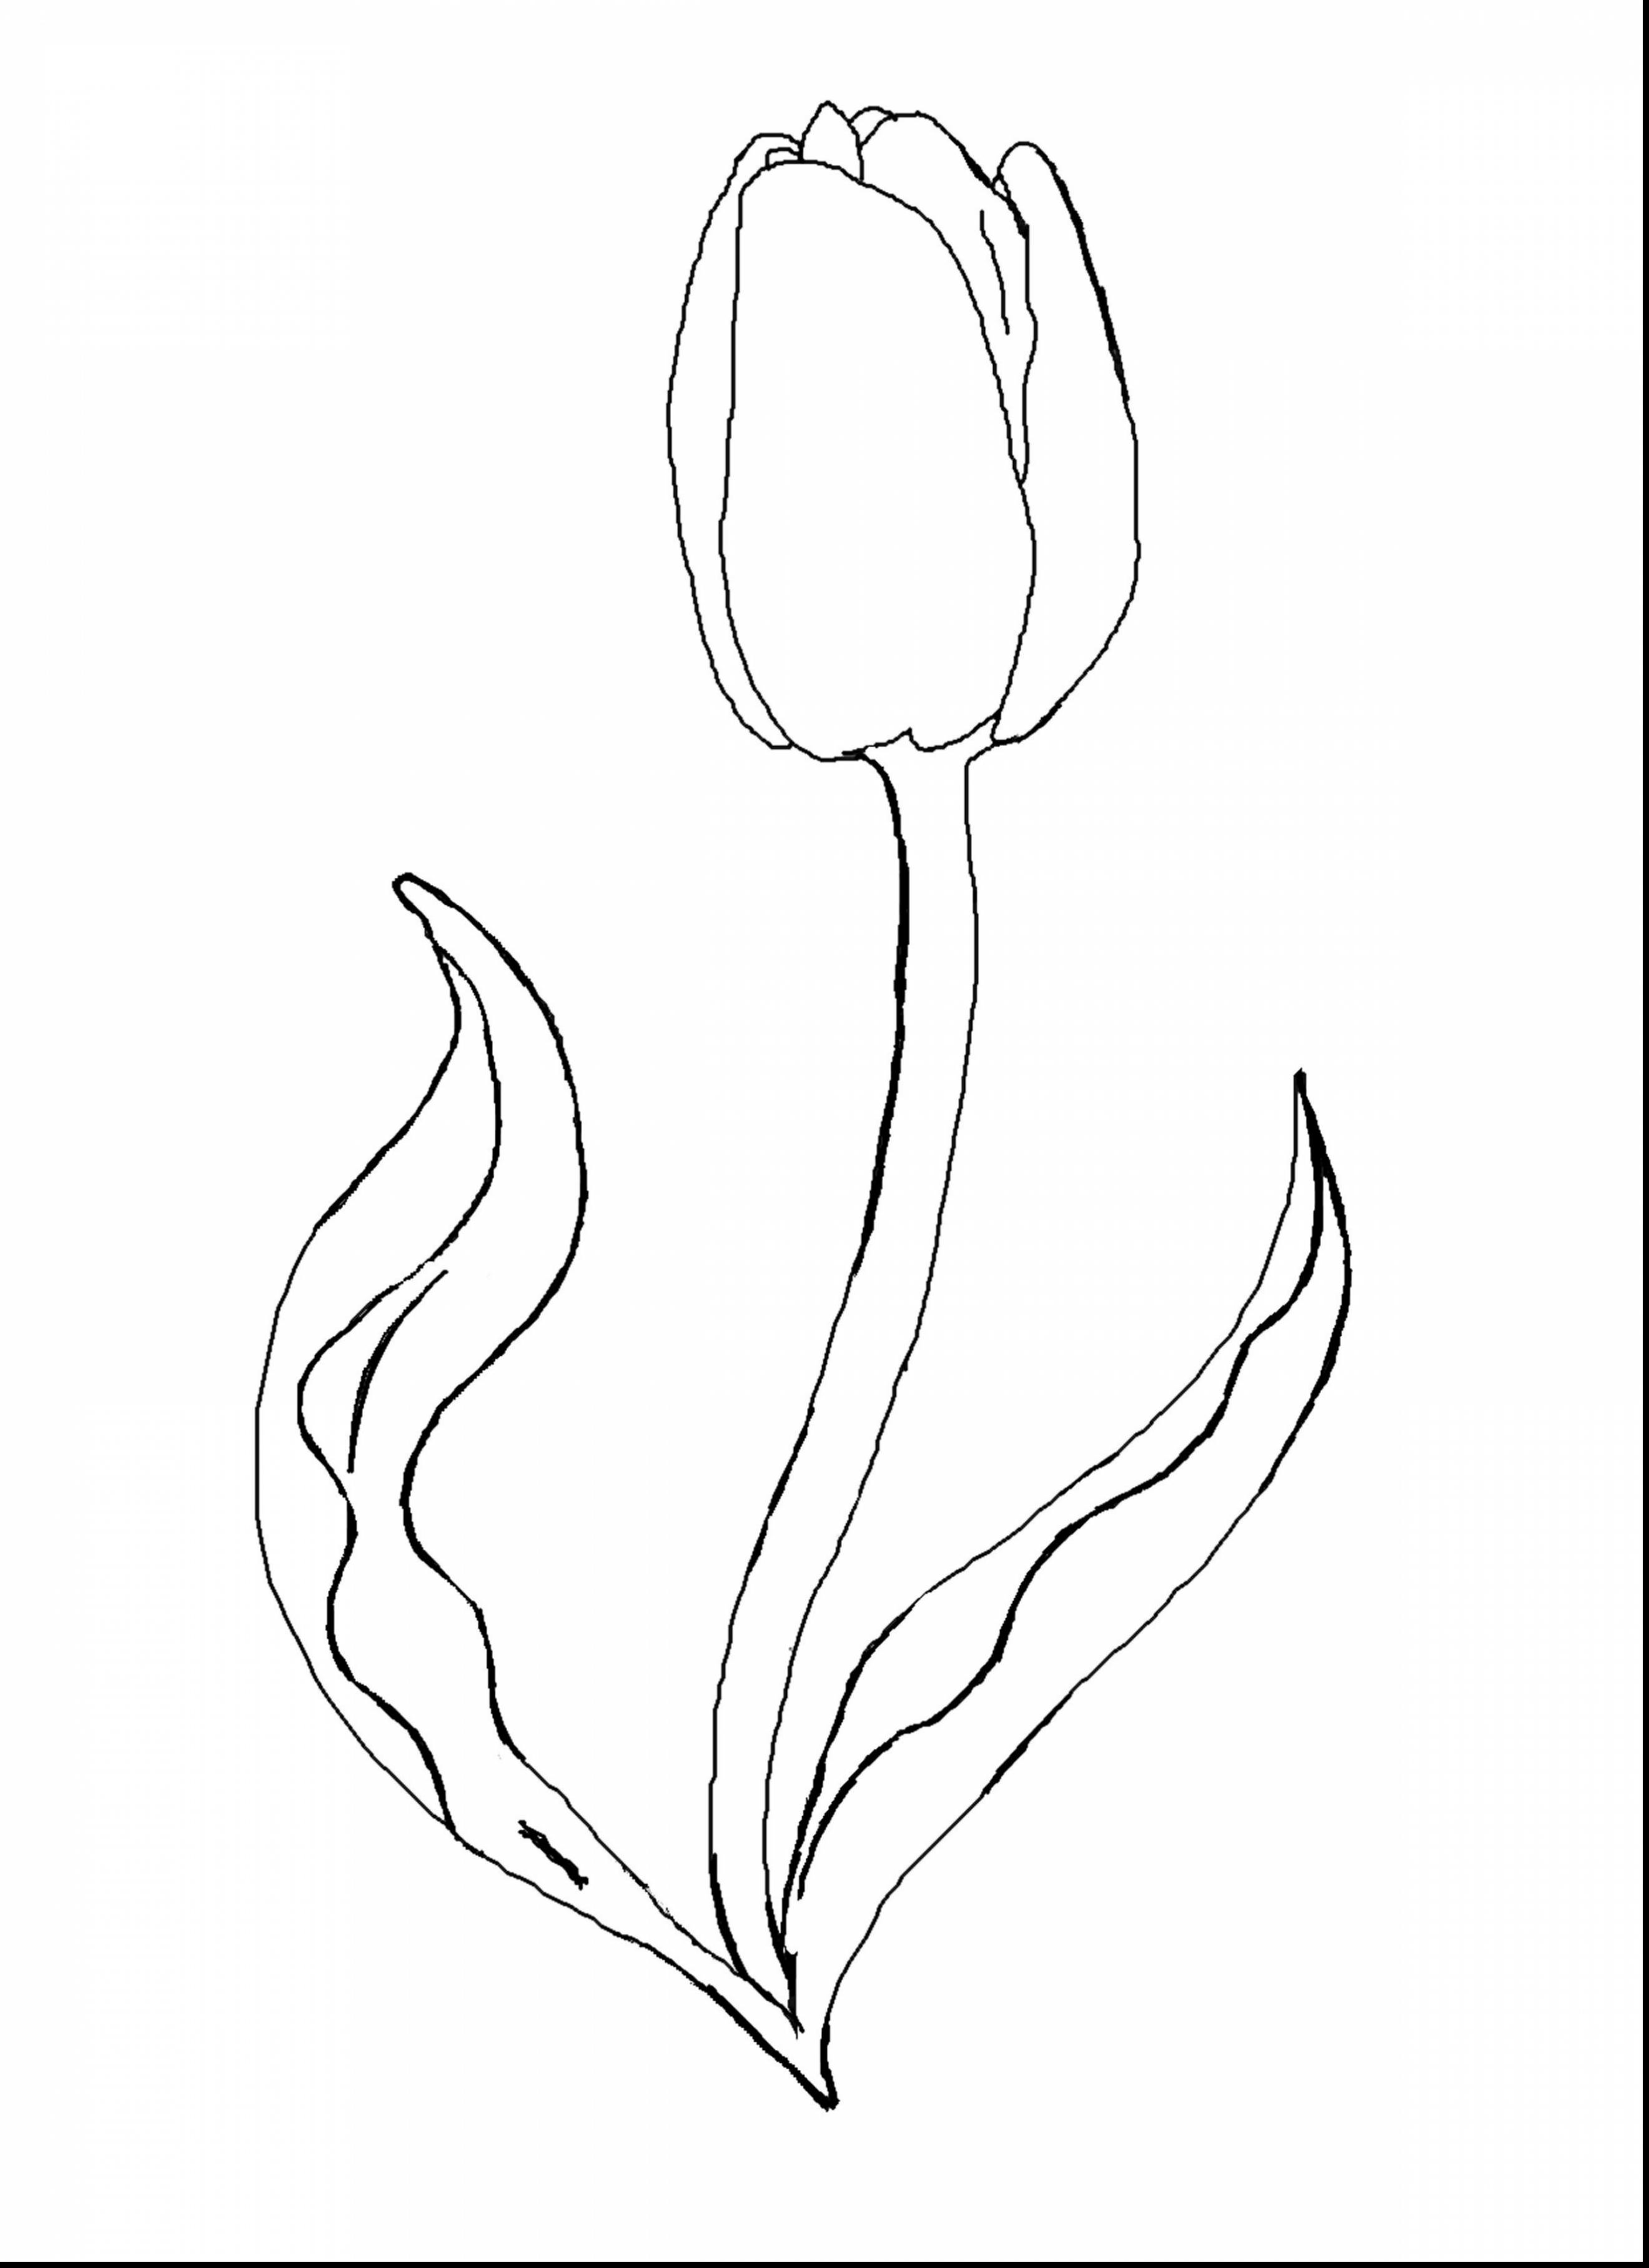 easy tulip drawing tulip drawing how to draw spring tulips step by step tulip easy drawing